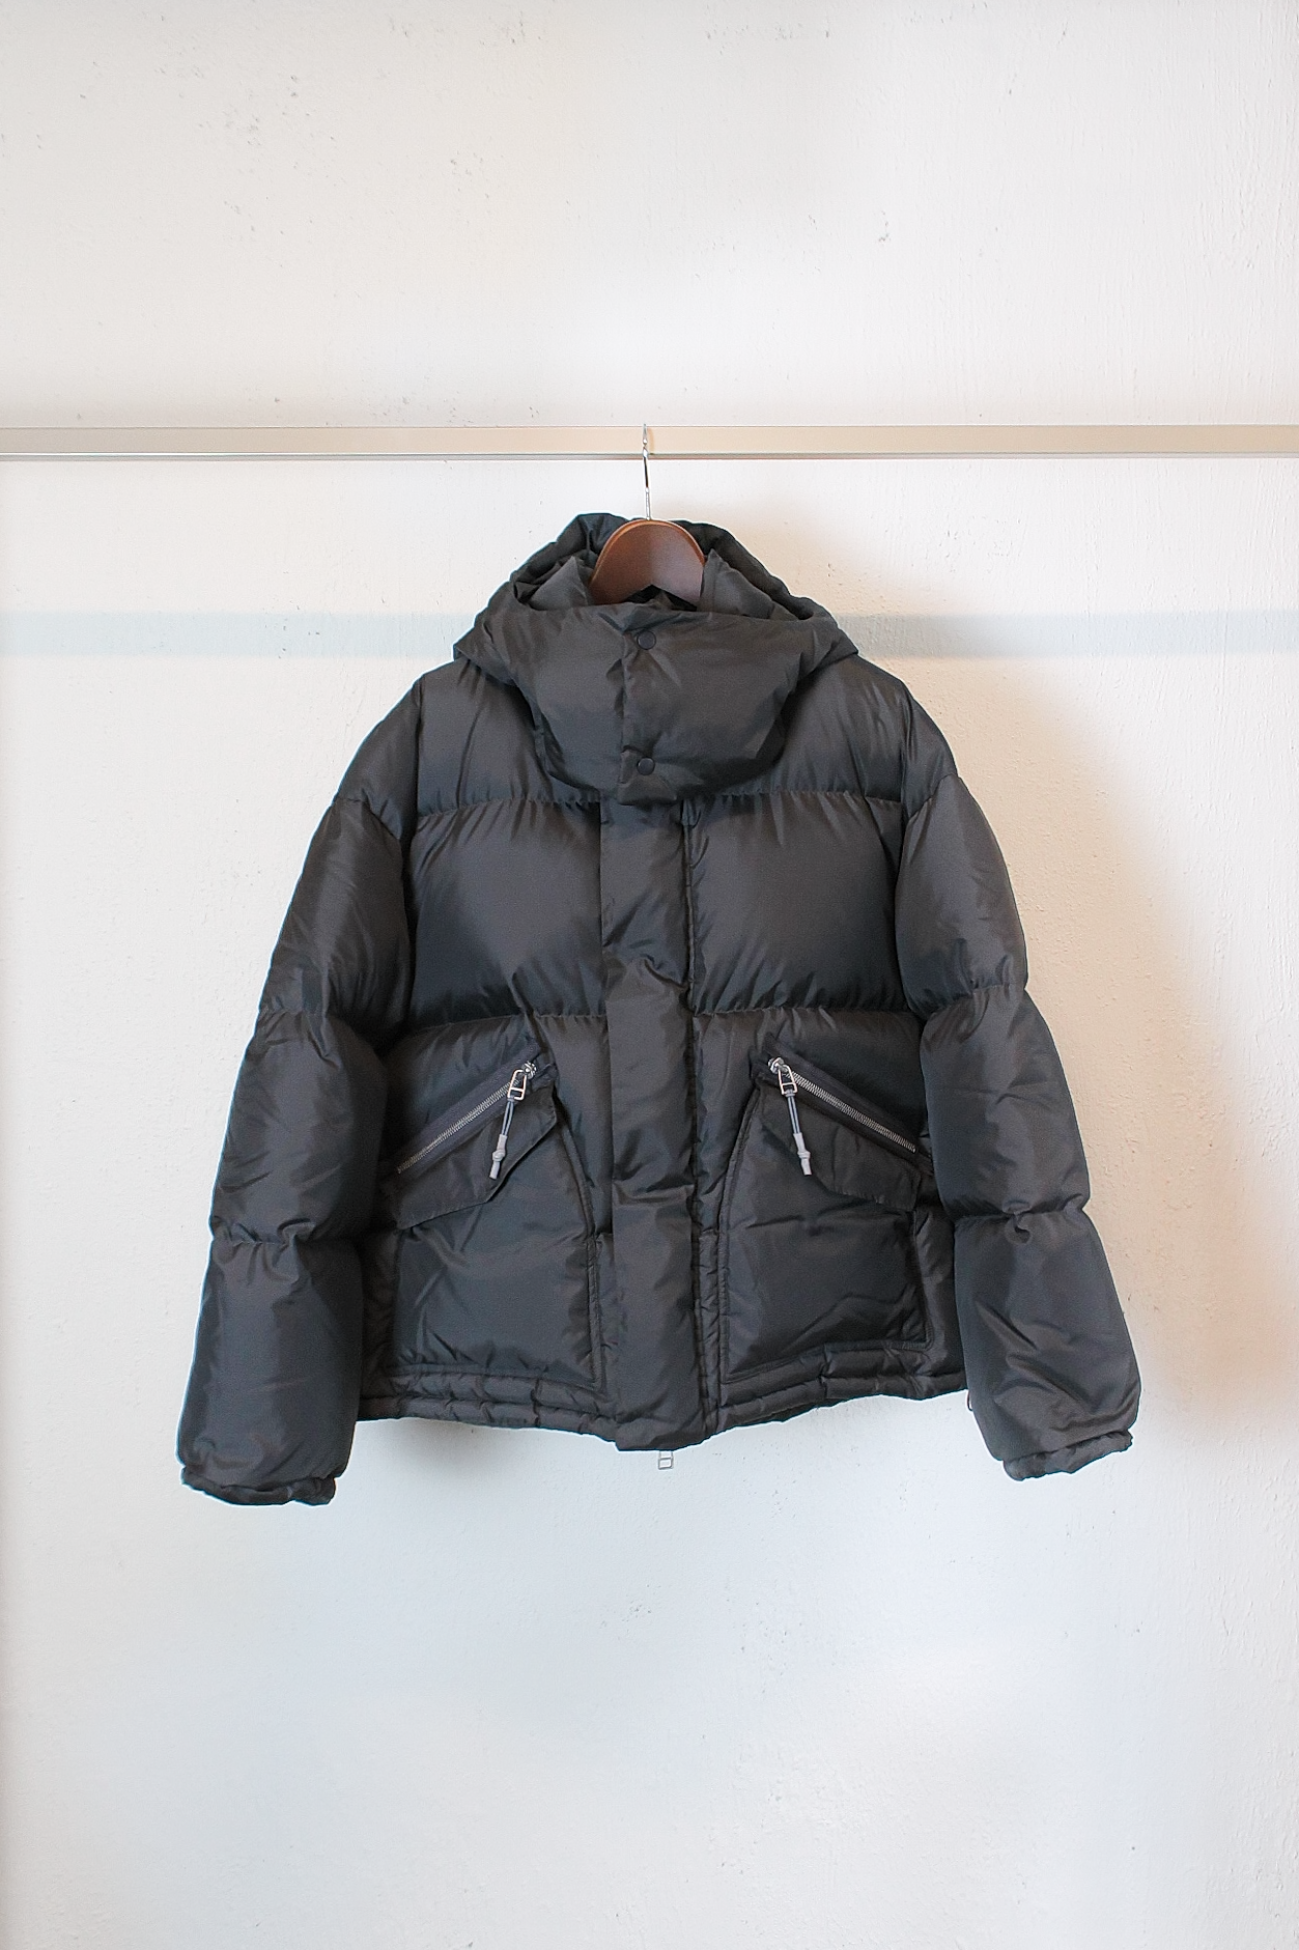 [Name.] Ripstop Oversized Down Jacket - Charcoal